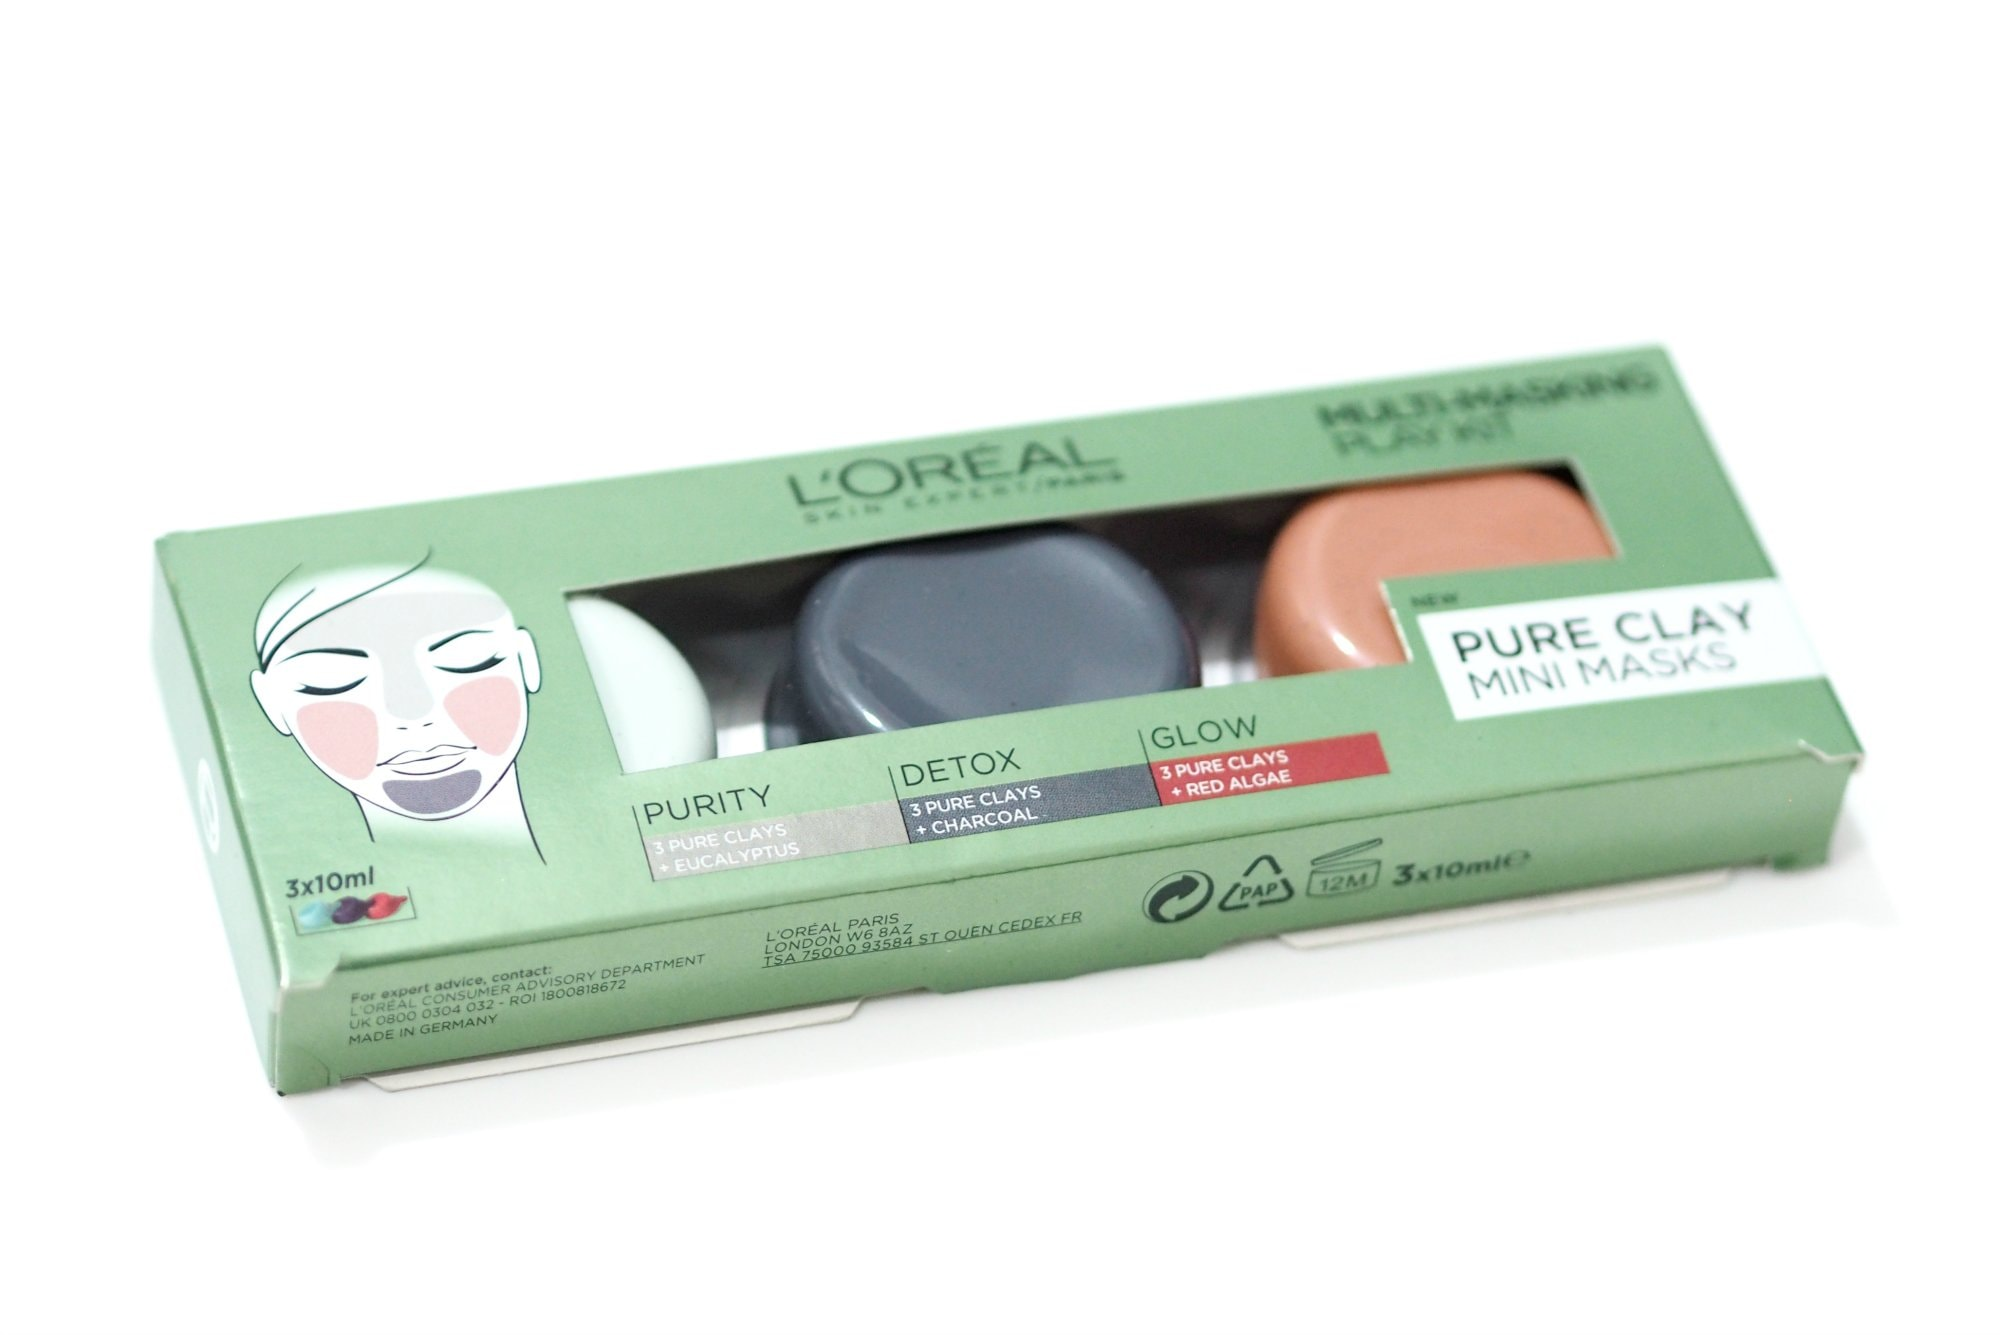 L'Oreal Pure Clay Face Masks / Loreal Pure Clay Face Masks